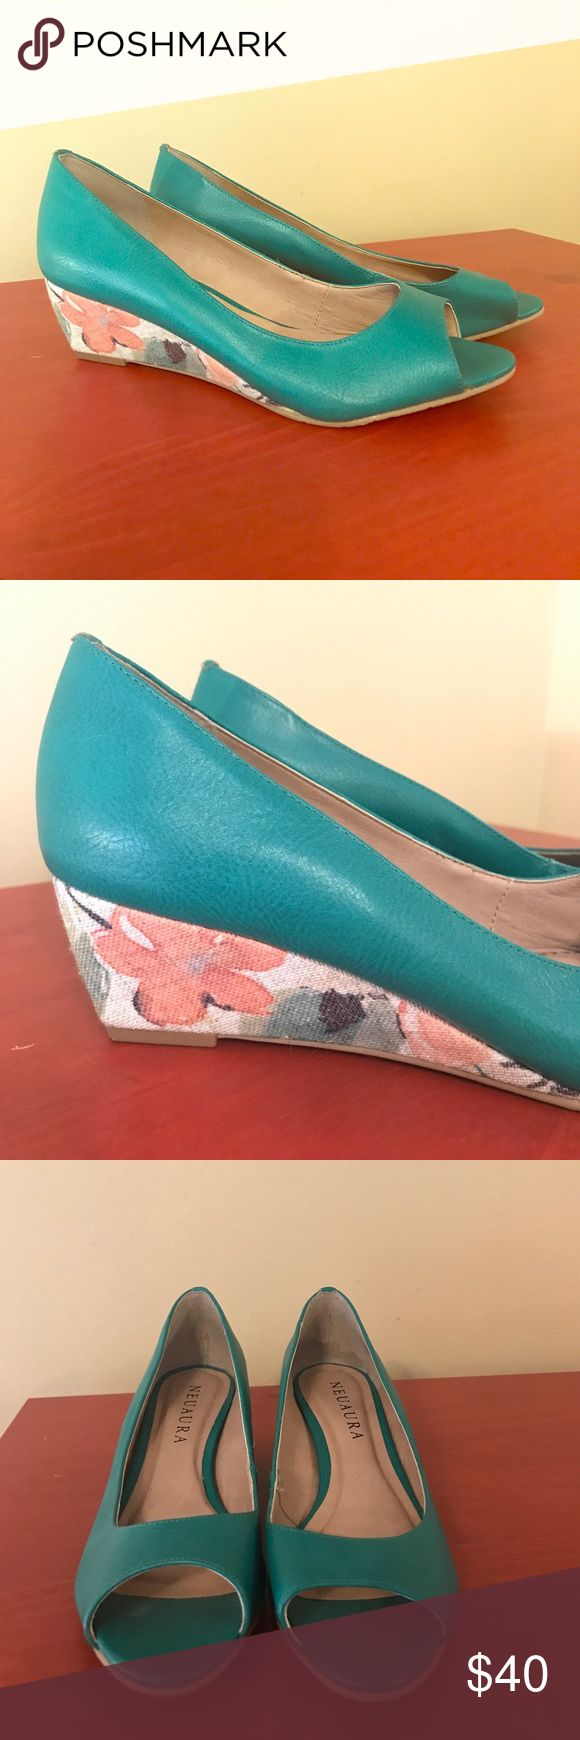 vegan, peep toe green wedges by Neuaura. These faux leather wedges by Neuaura have a 2-inch floral fabric heel. They've only been worn once. No scuffs. Great for summer. Ethically and sustainably made in Brazil. Neuaura Shoes Wedges